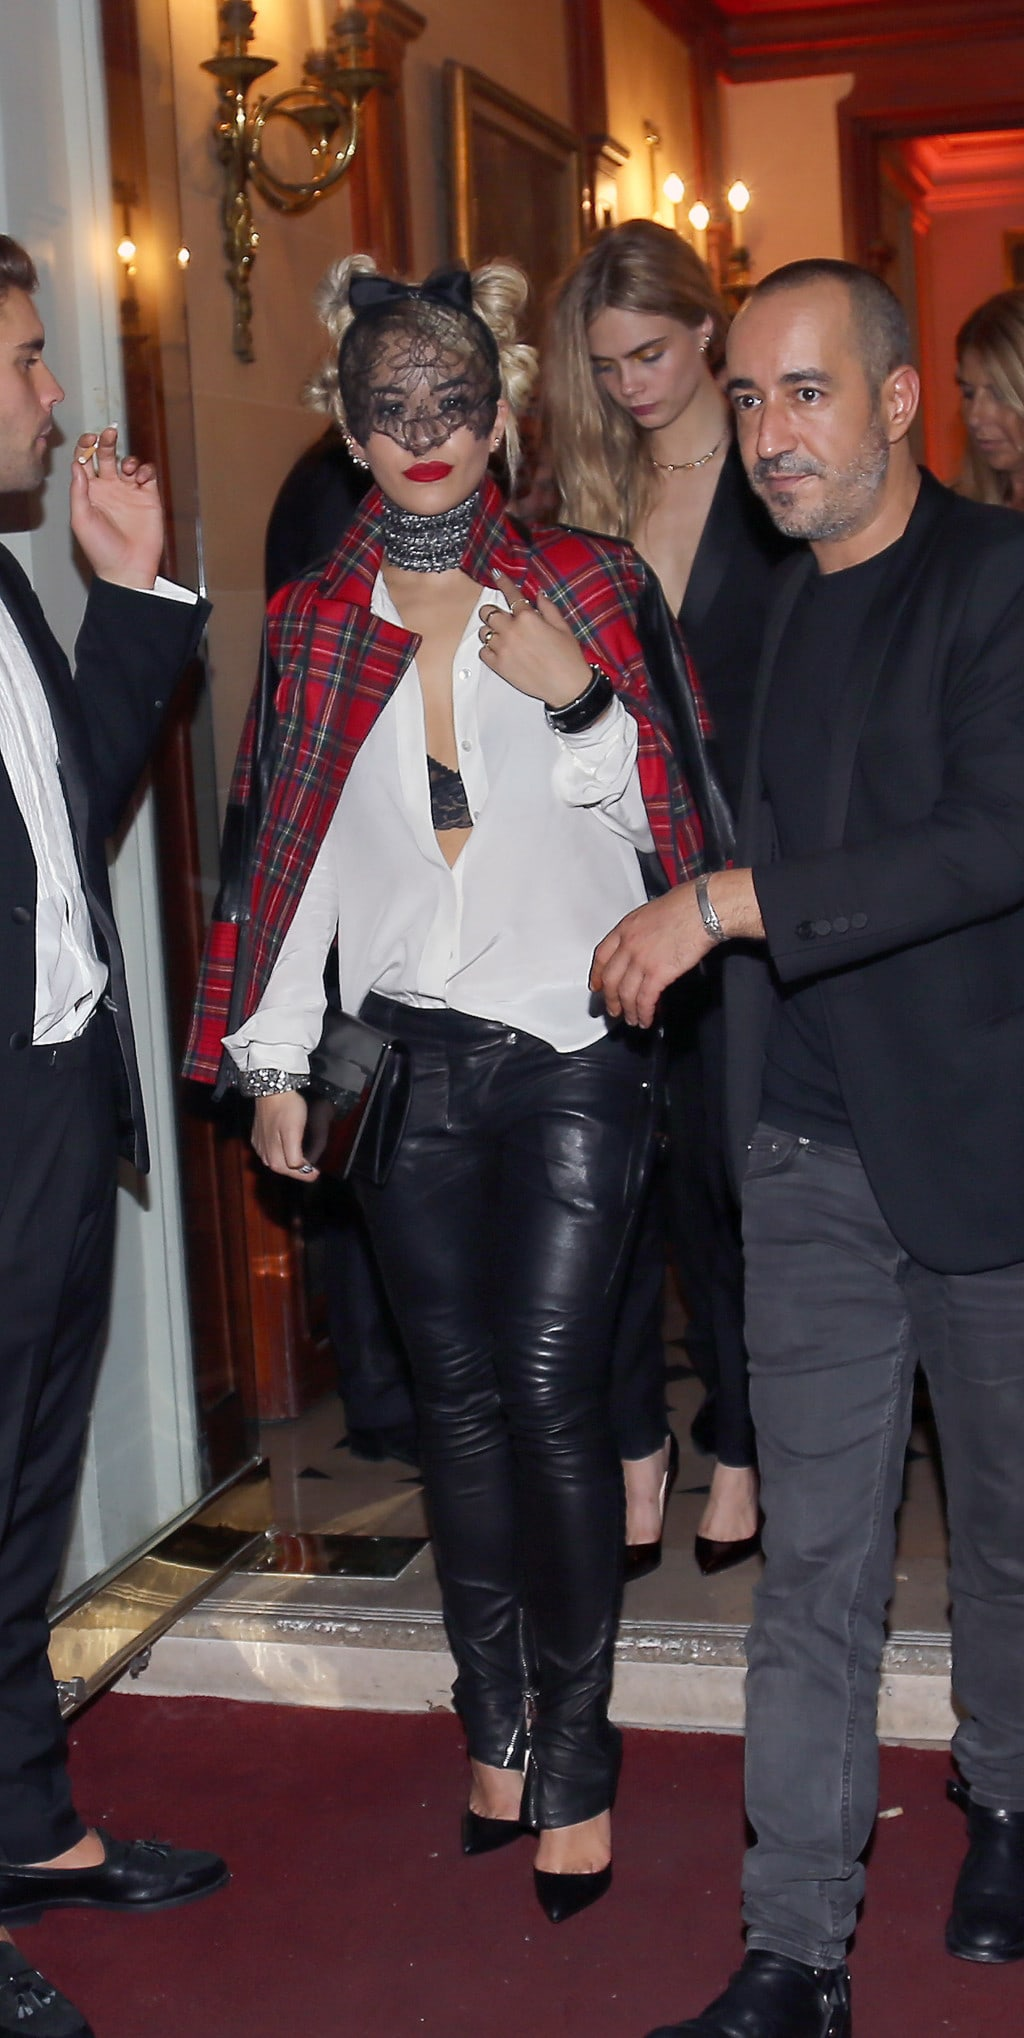 Carine Roitfeld's after party in Paris